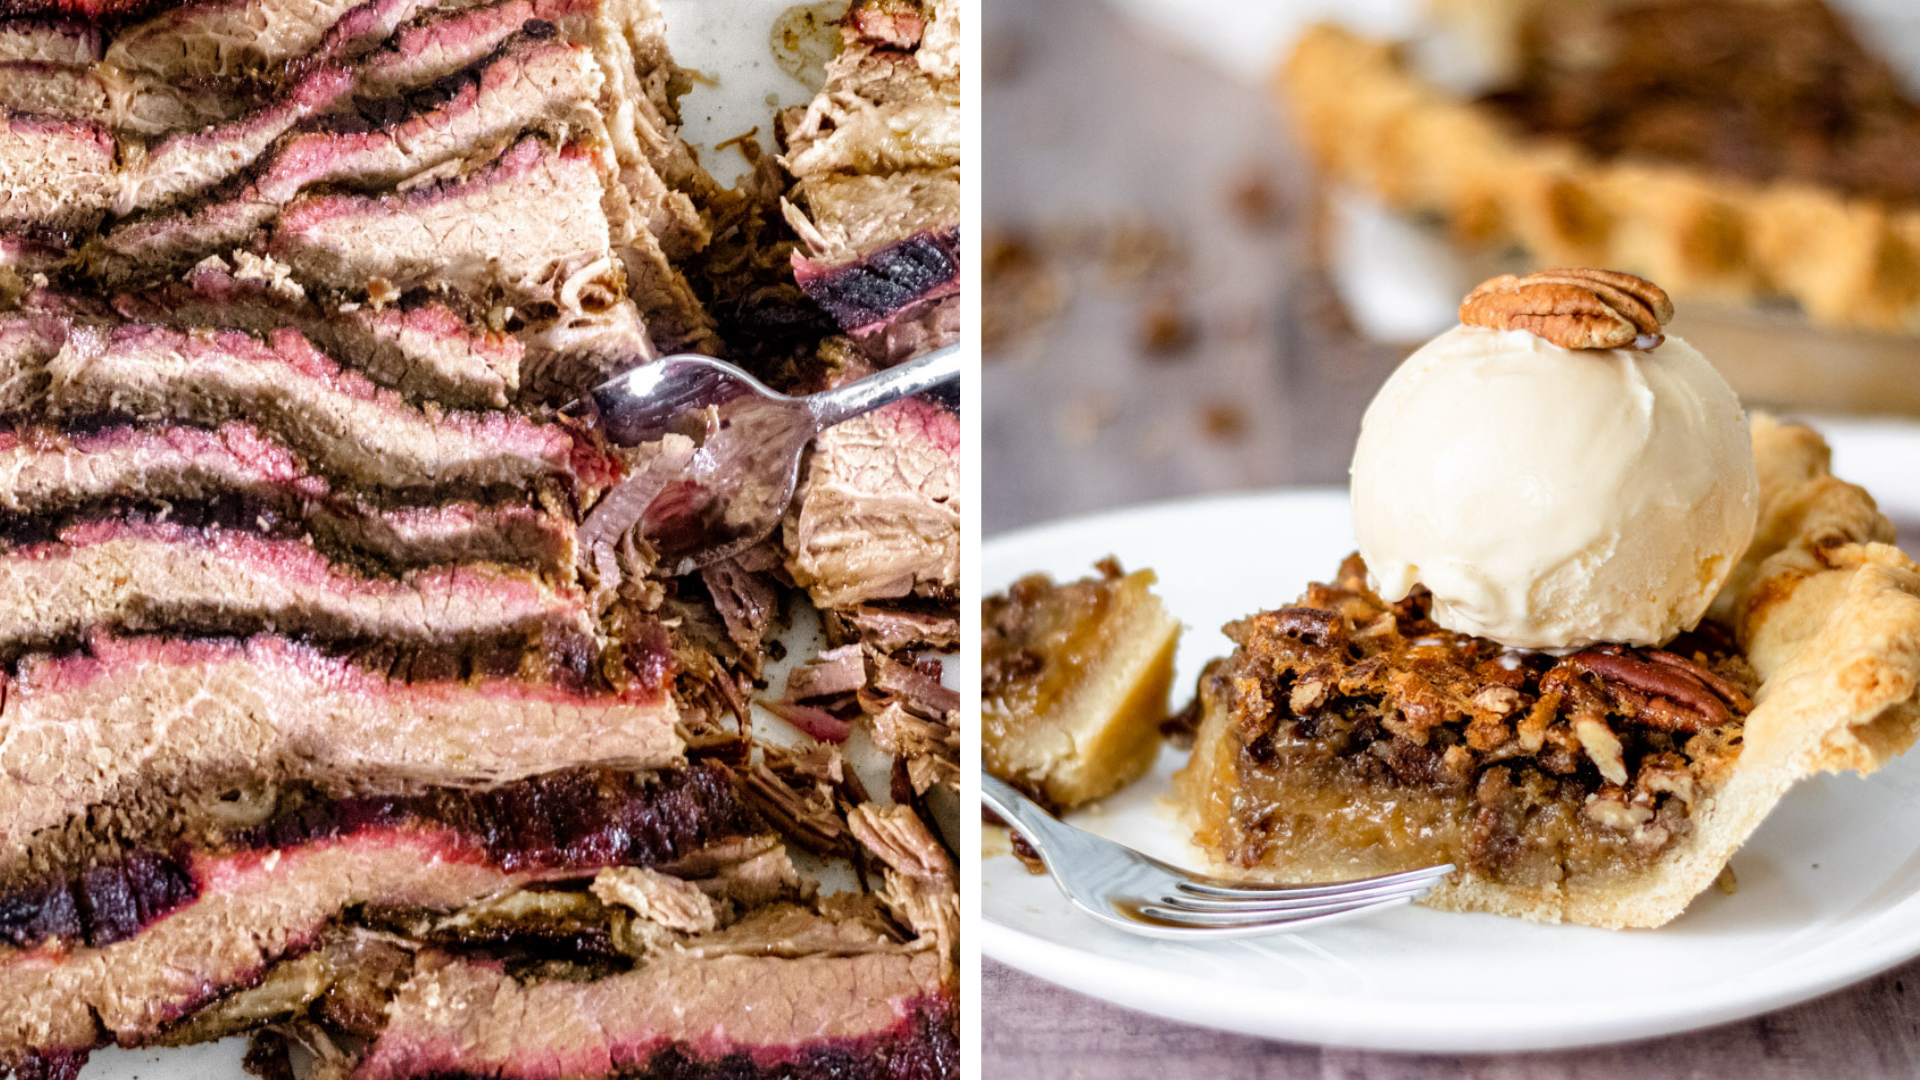 Barbecue Brisket & Pecan Pie on our Food Bucket List. Images courtesy of Erin from State of Dinner